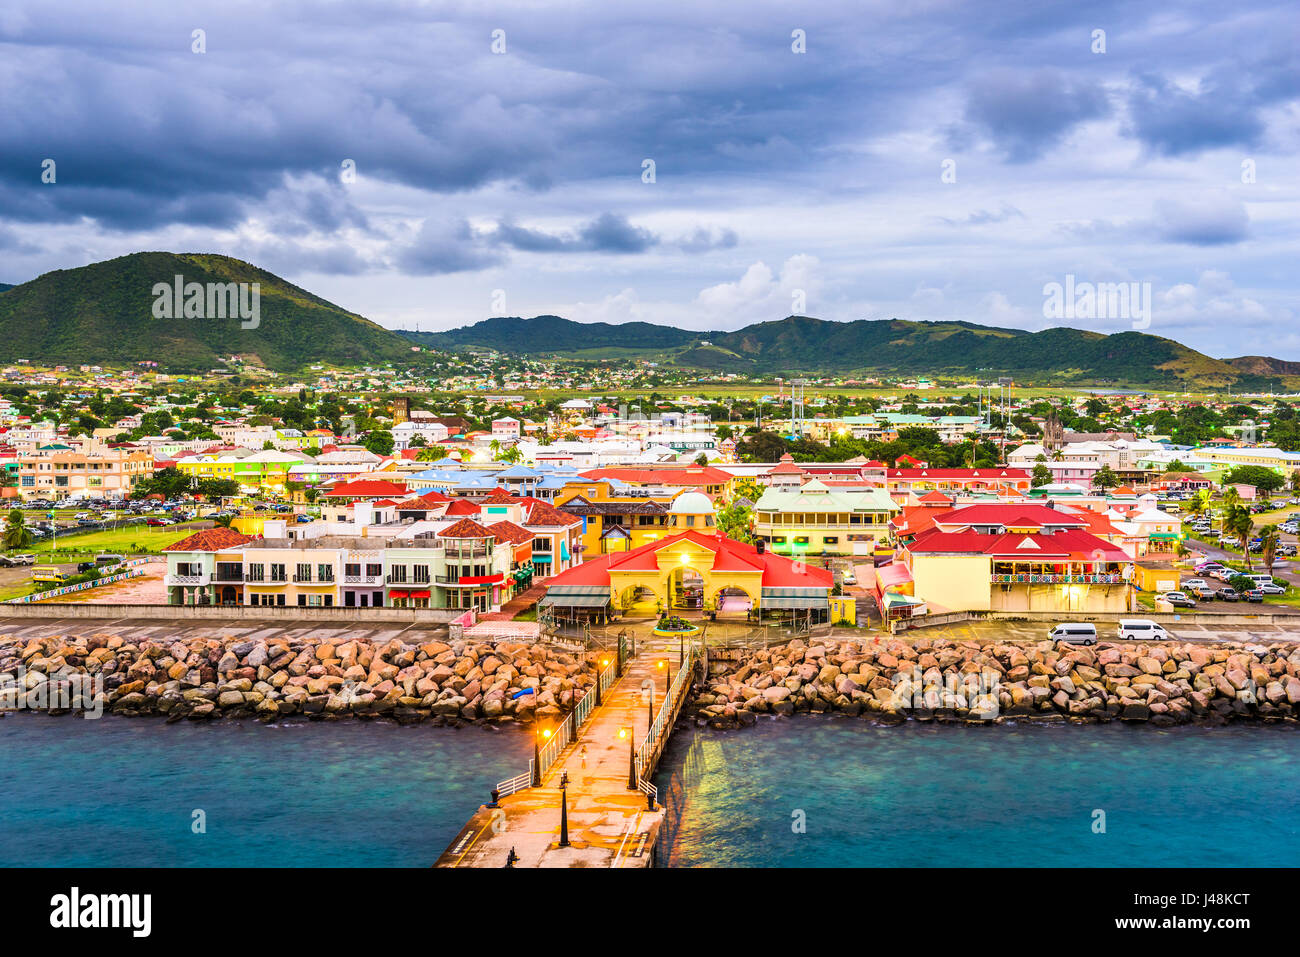 Basseterre, St. Kitts and Nevis town skyline at the port. - Stock Image